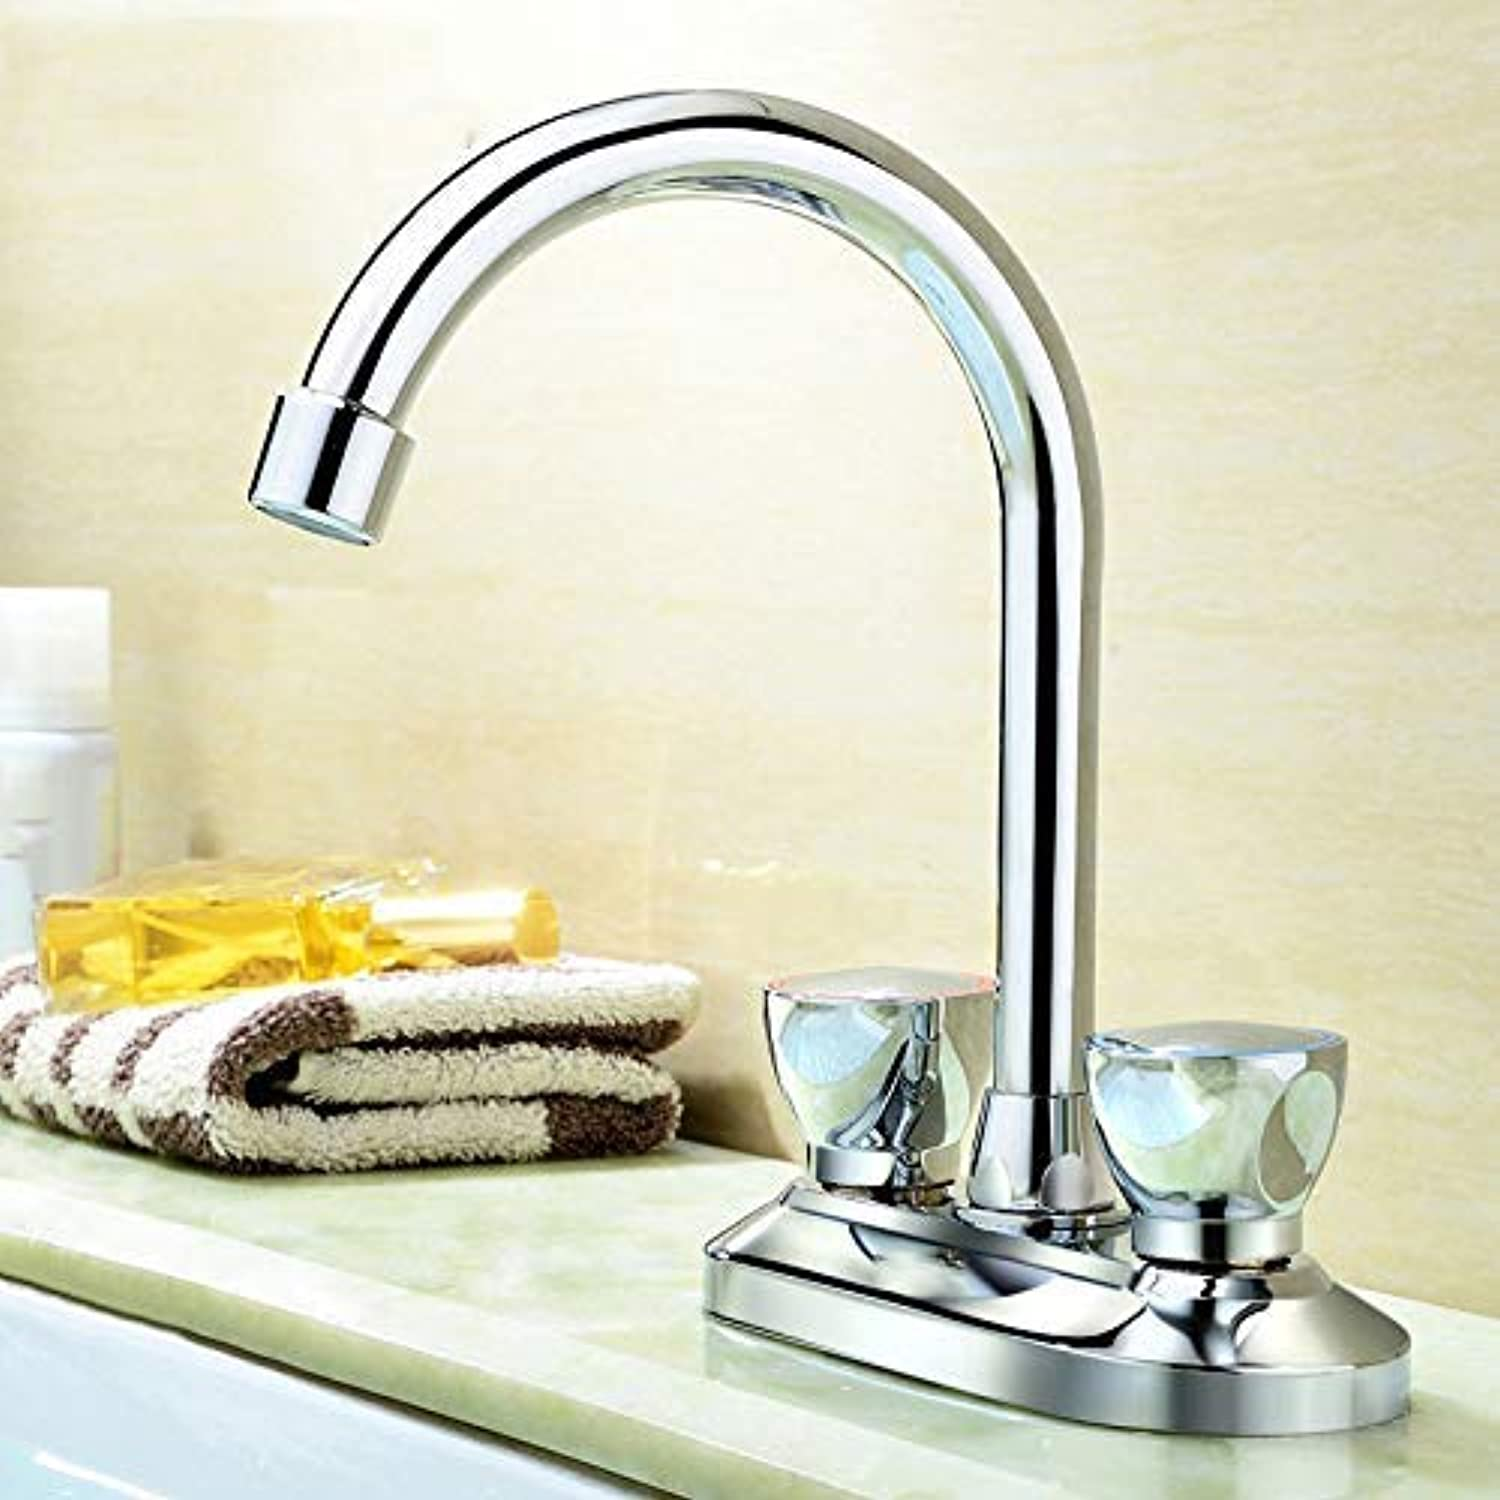 Oudan Basin Mixer Tap Bathroom Sink Faucet Double Double Handle hot and cold basin tap,T (color   T)